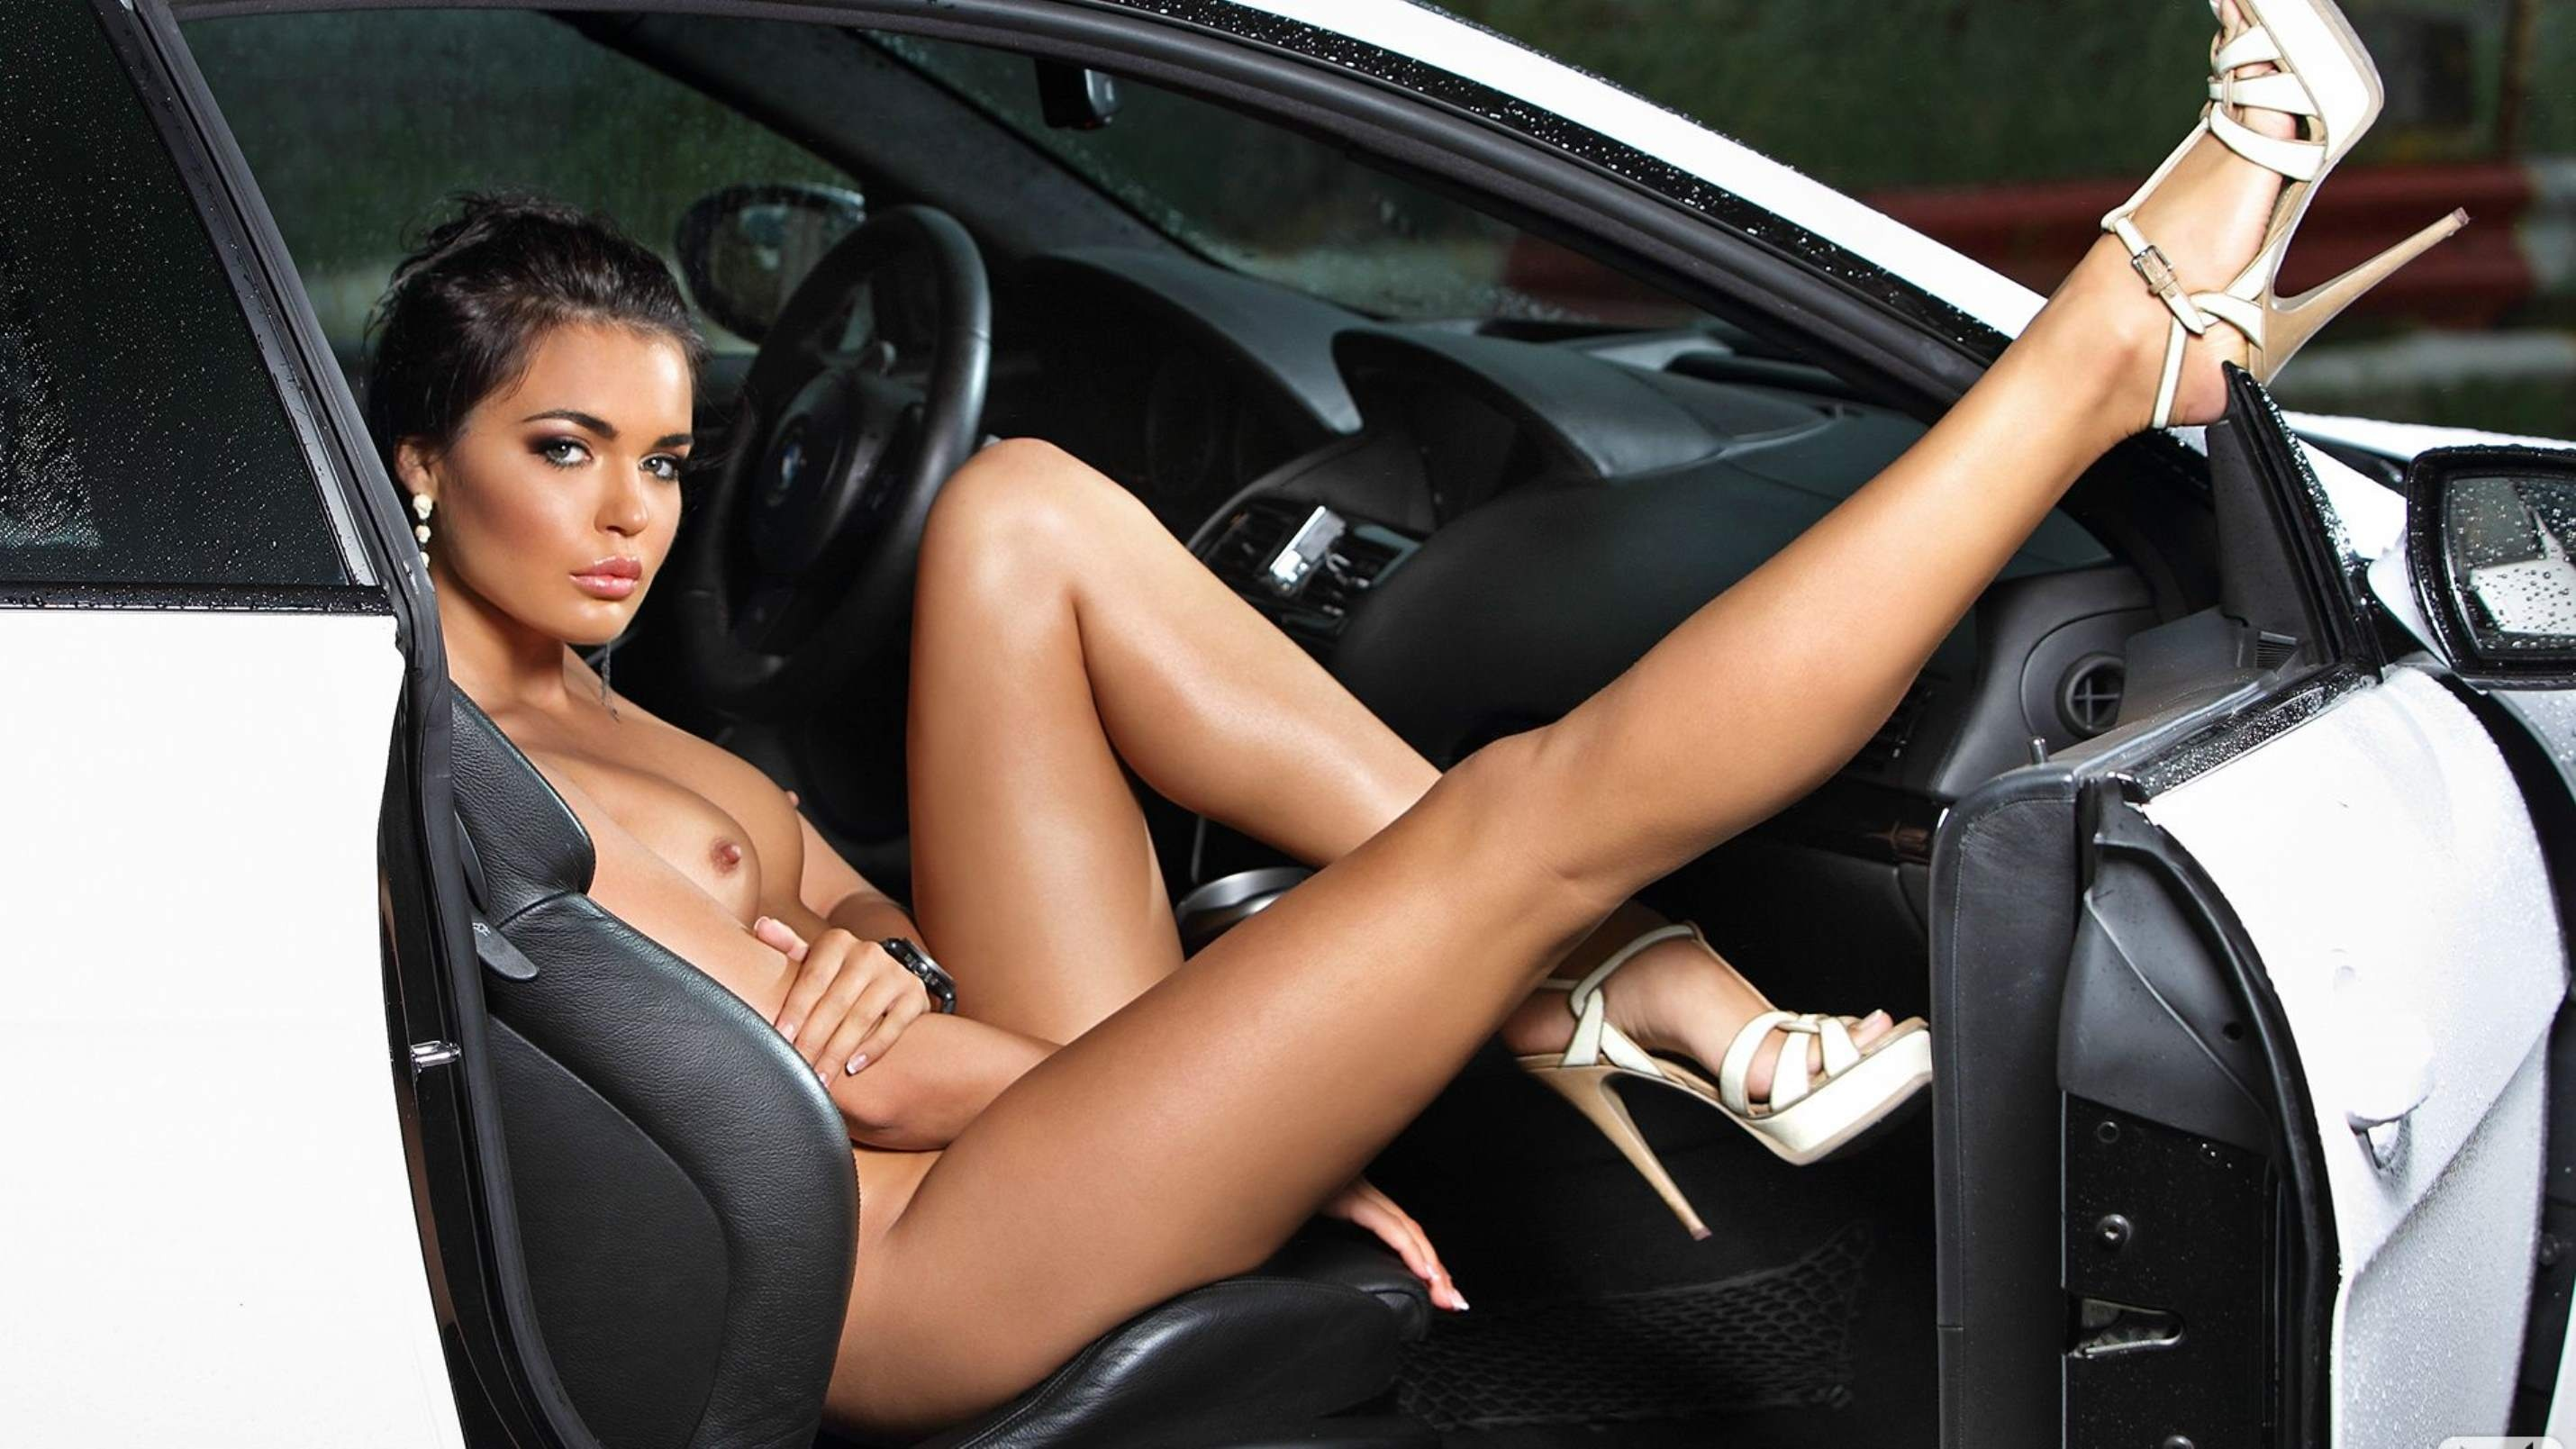 Nude woman hot cars